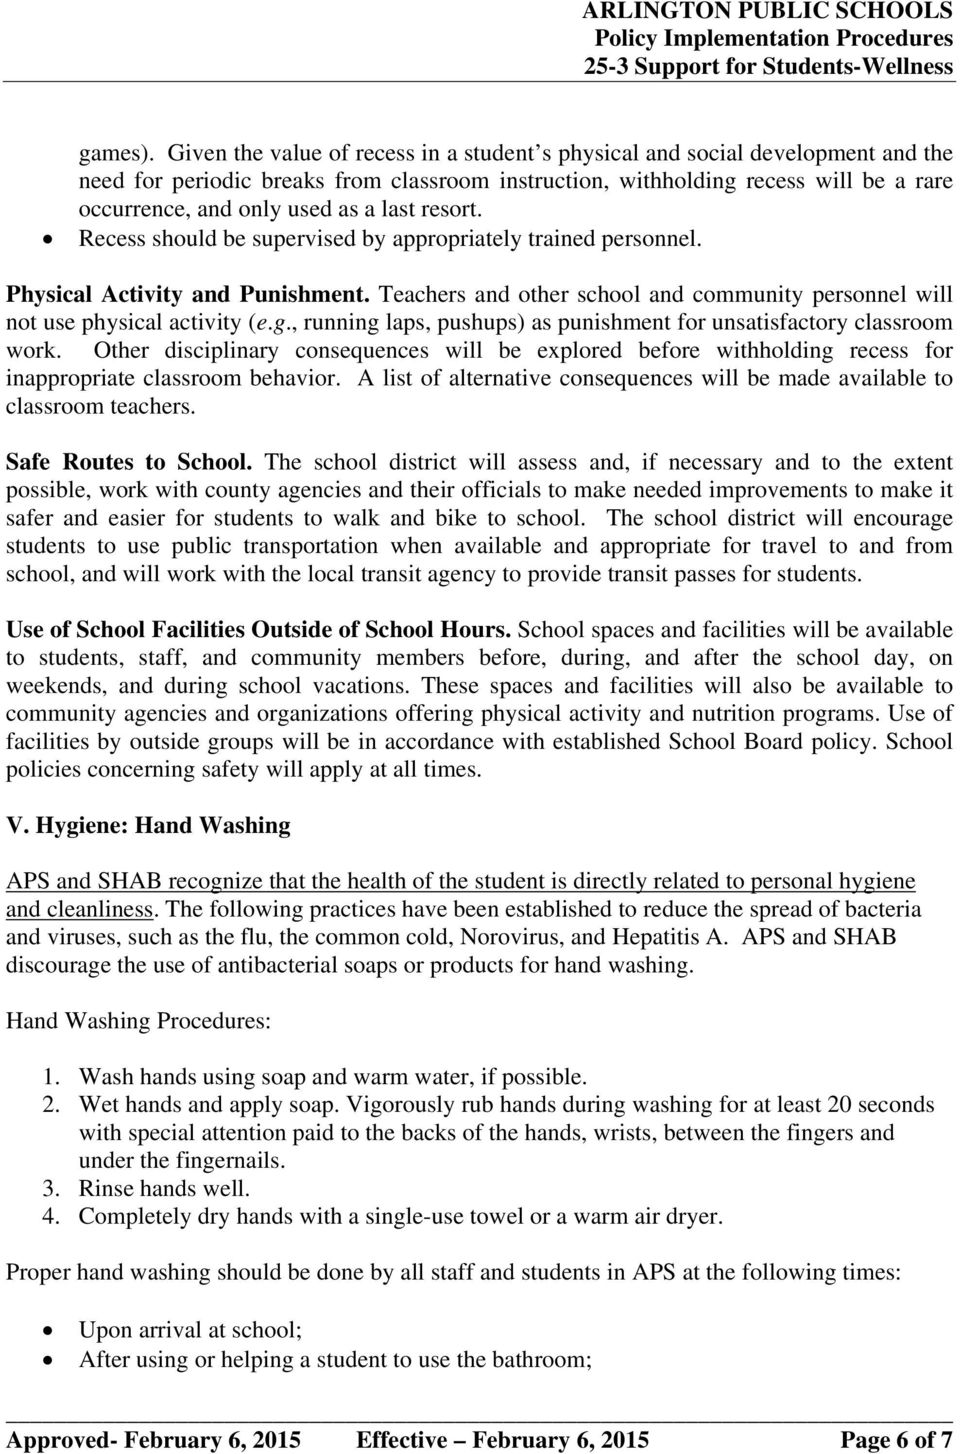 last resort. Recess should be supervised by appropriately trained personnel. Physical Activity and Punishment. Teachers and other school and community personnel will not use physical activity (e.g.